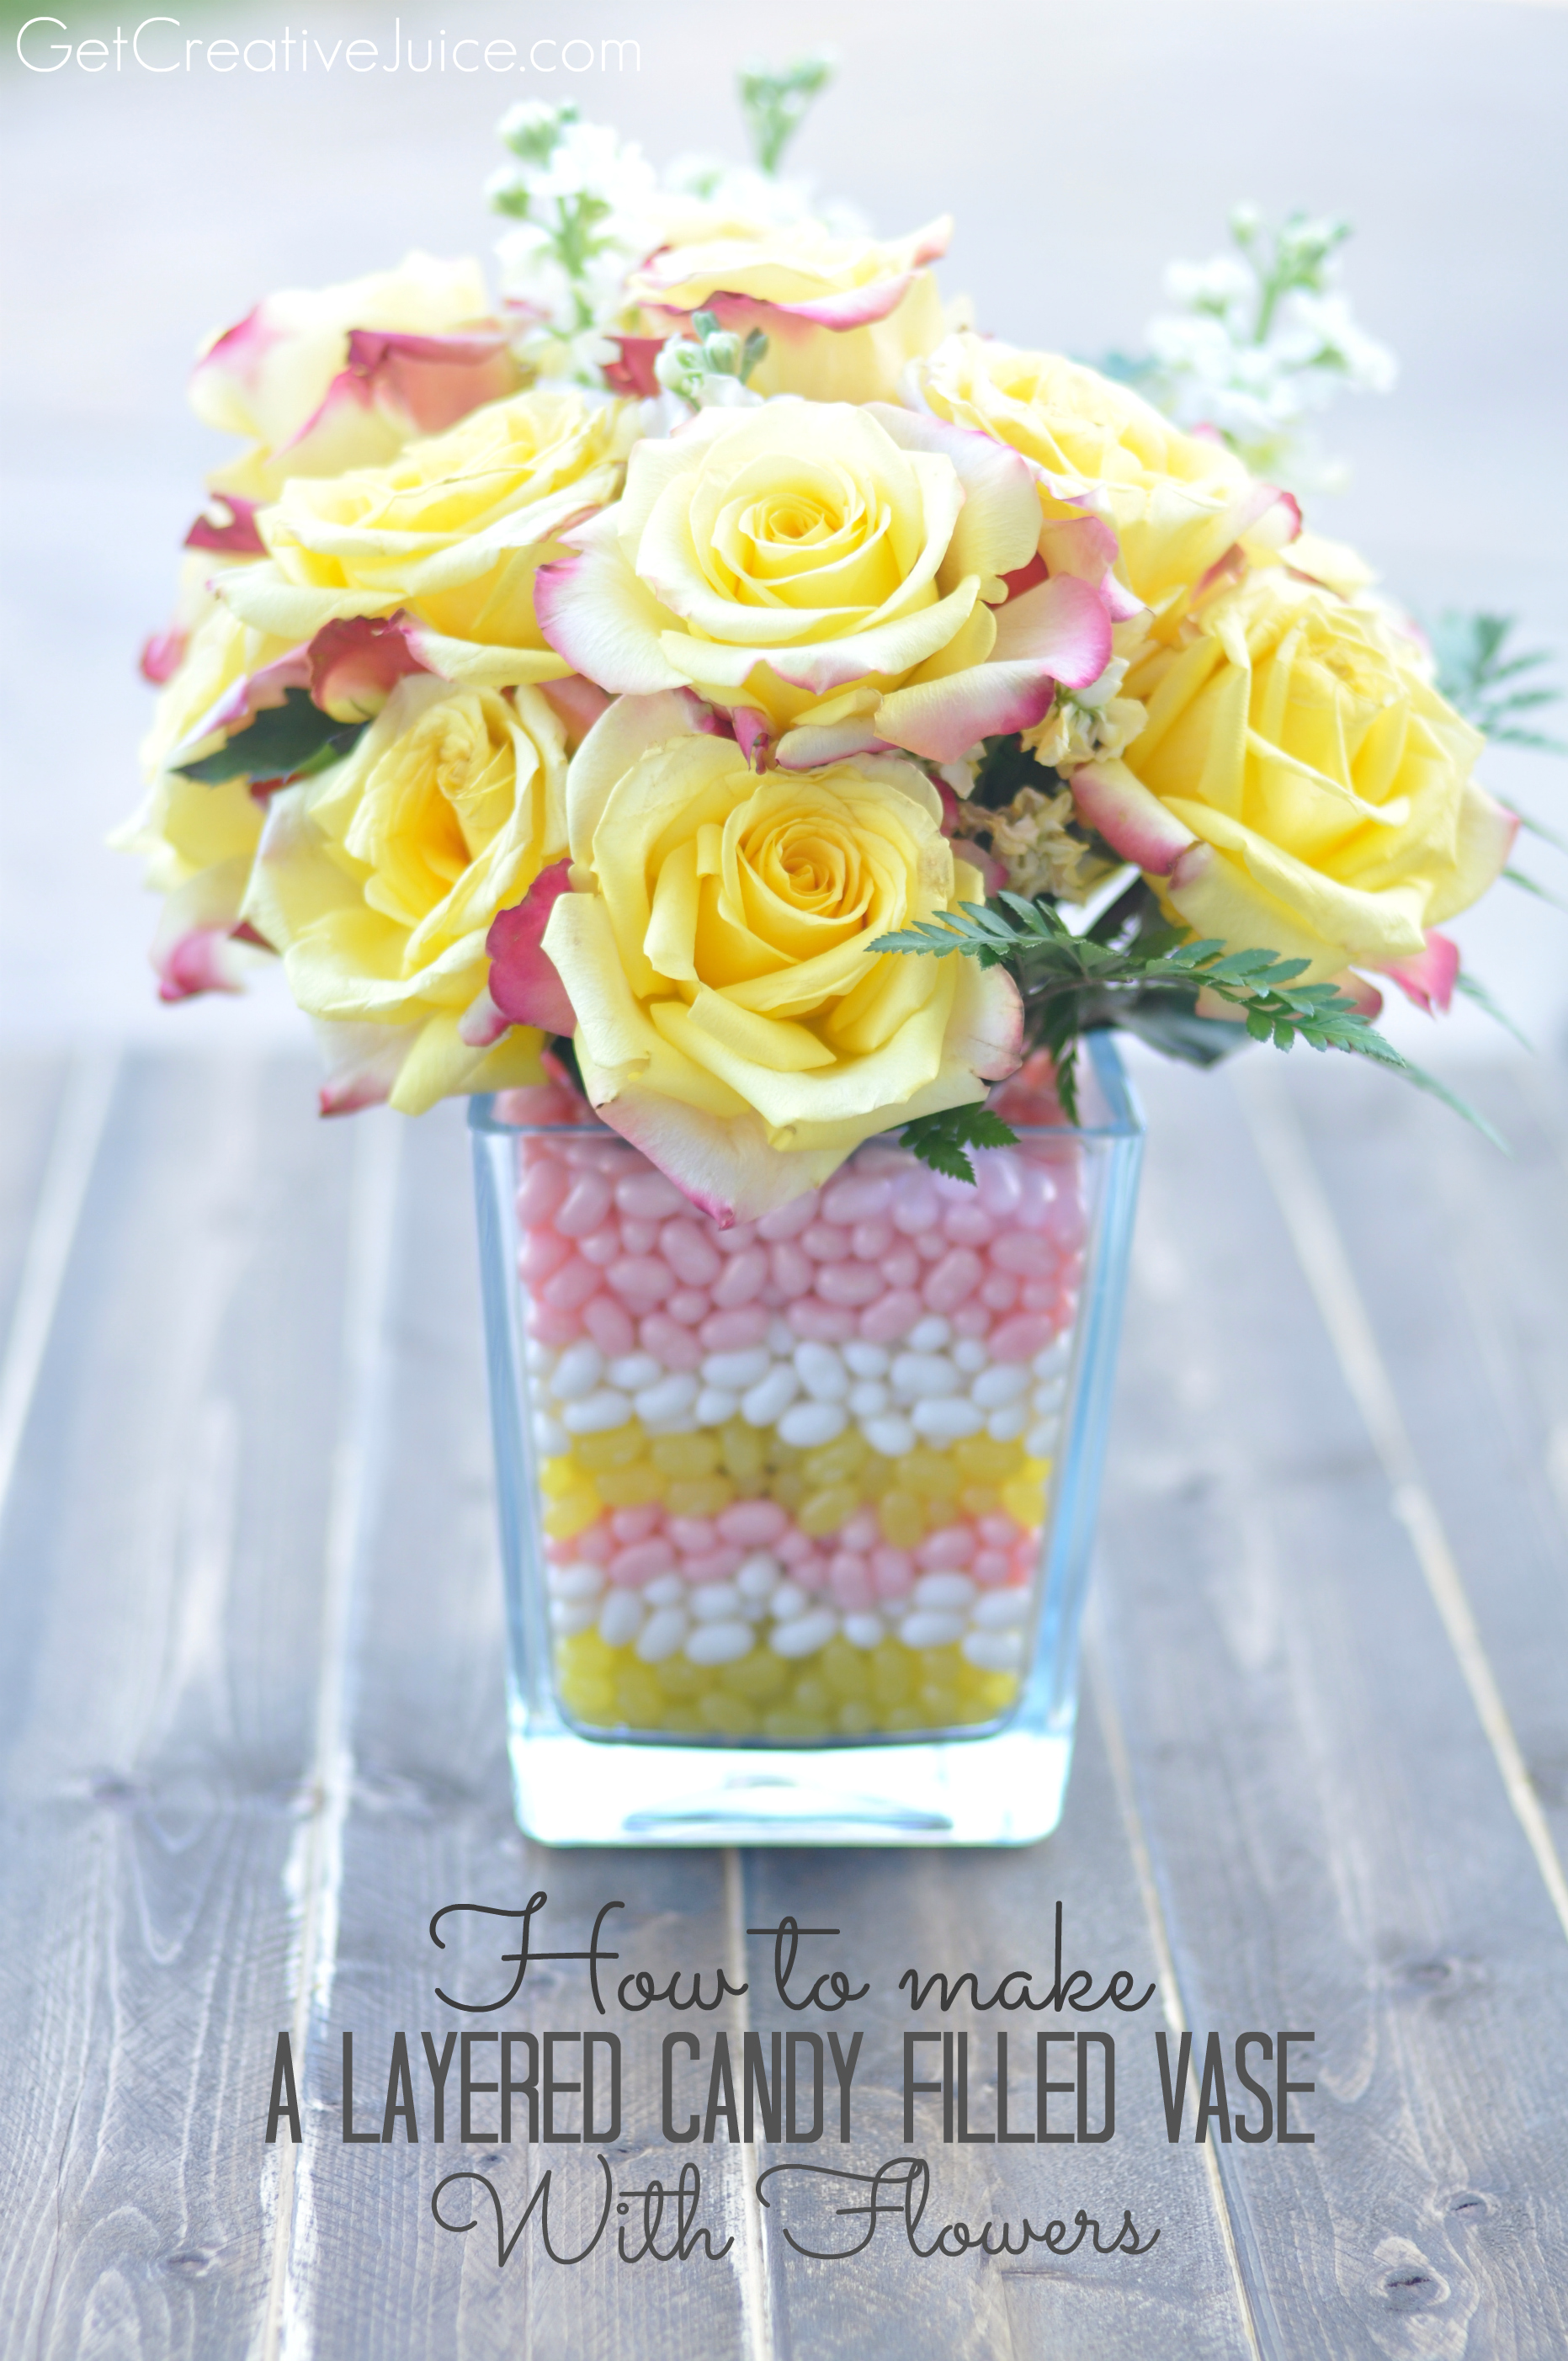 How to make a layered candy filled vase with flowers creative juice how to make a layered candy filled vase with flowers tutorial reviewsmspy